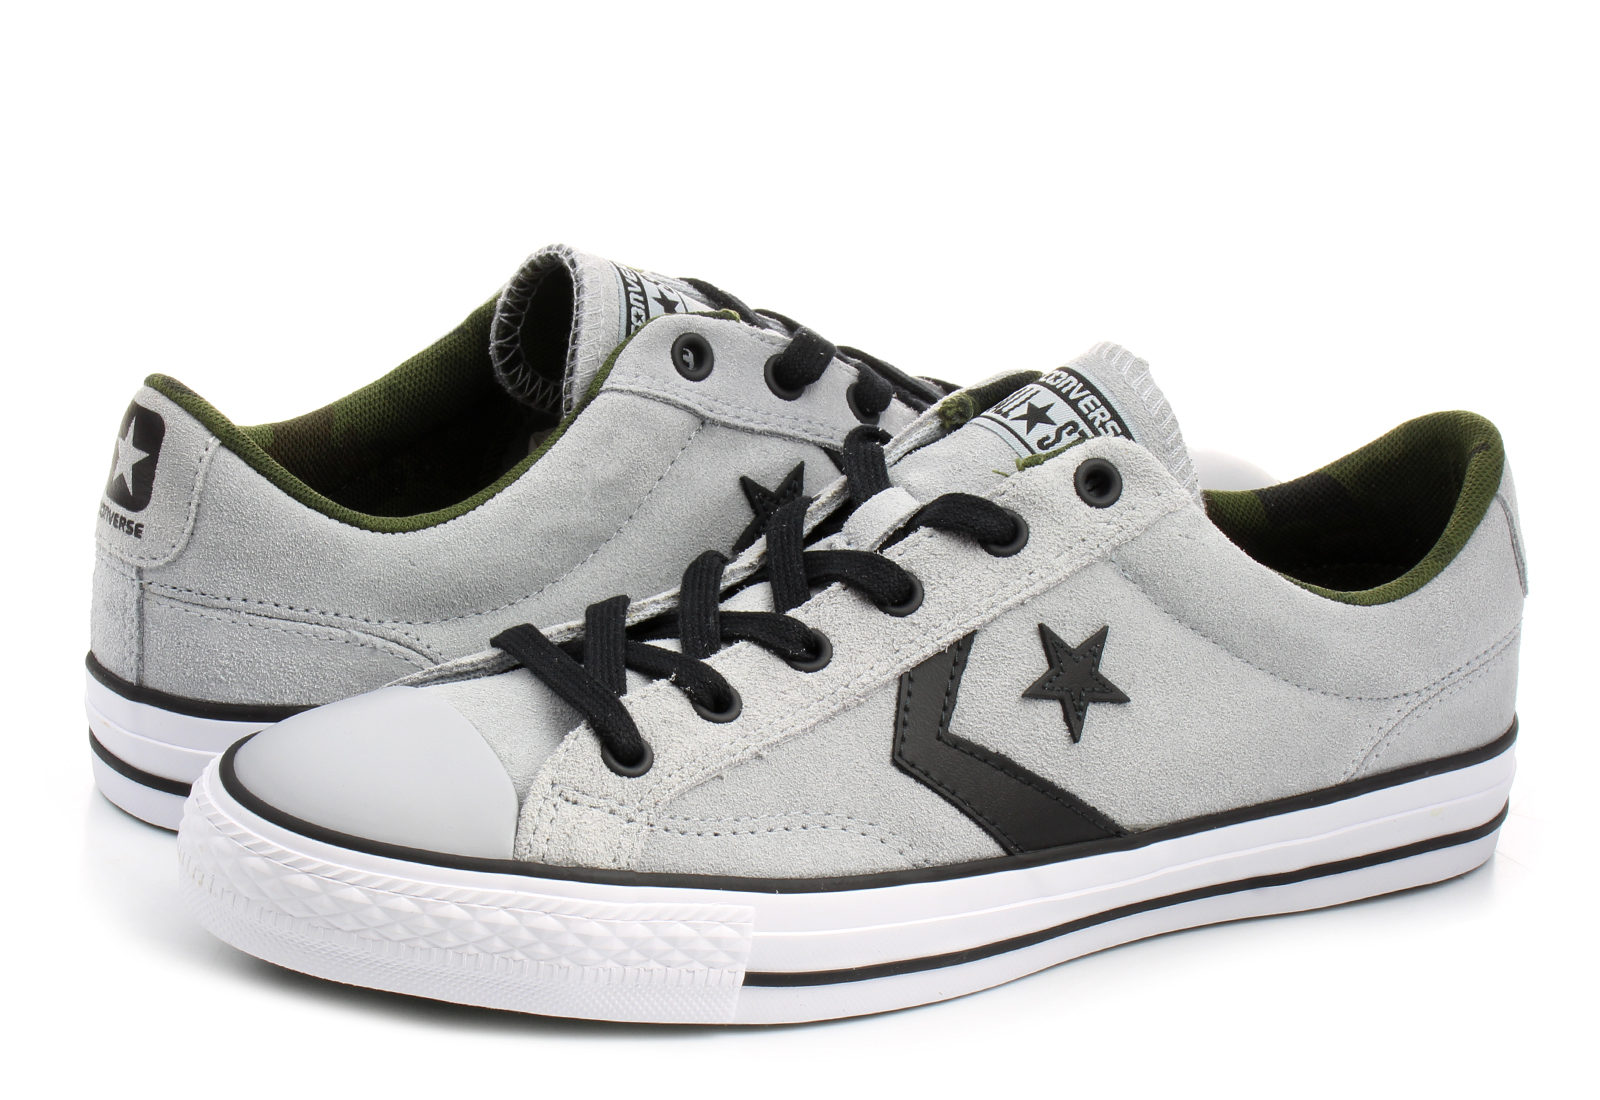 f4656f0db4b907 Converse Niske Tenisice Sive Tenisice - Star Player - Office Shoes ...